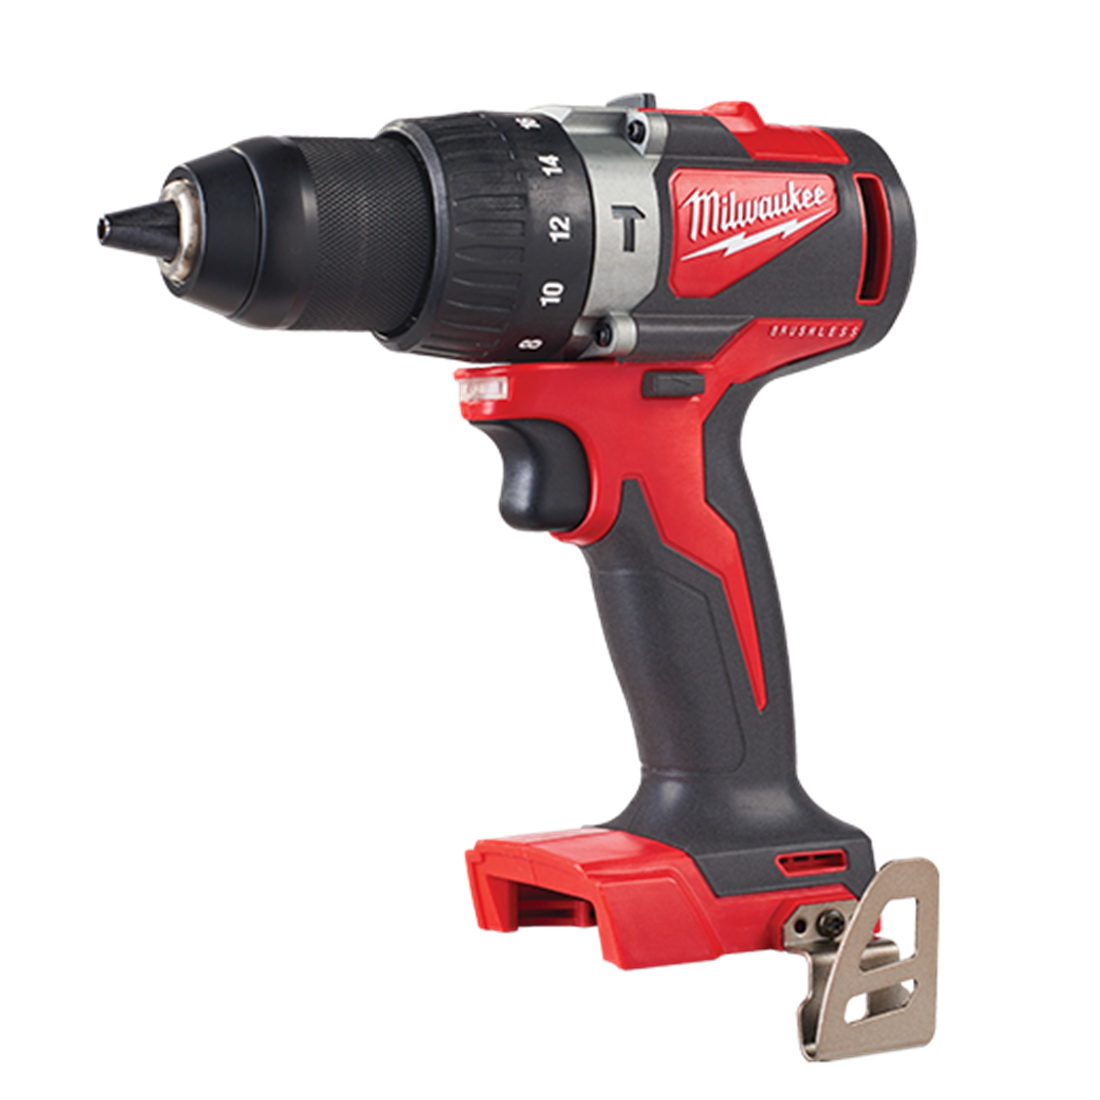 M18 Compact Cordless Brushless Hammer Drill/Driver 13mm (Tool Only)